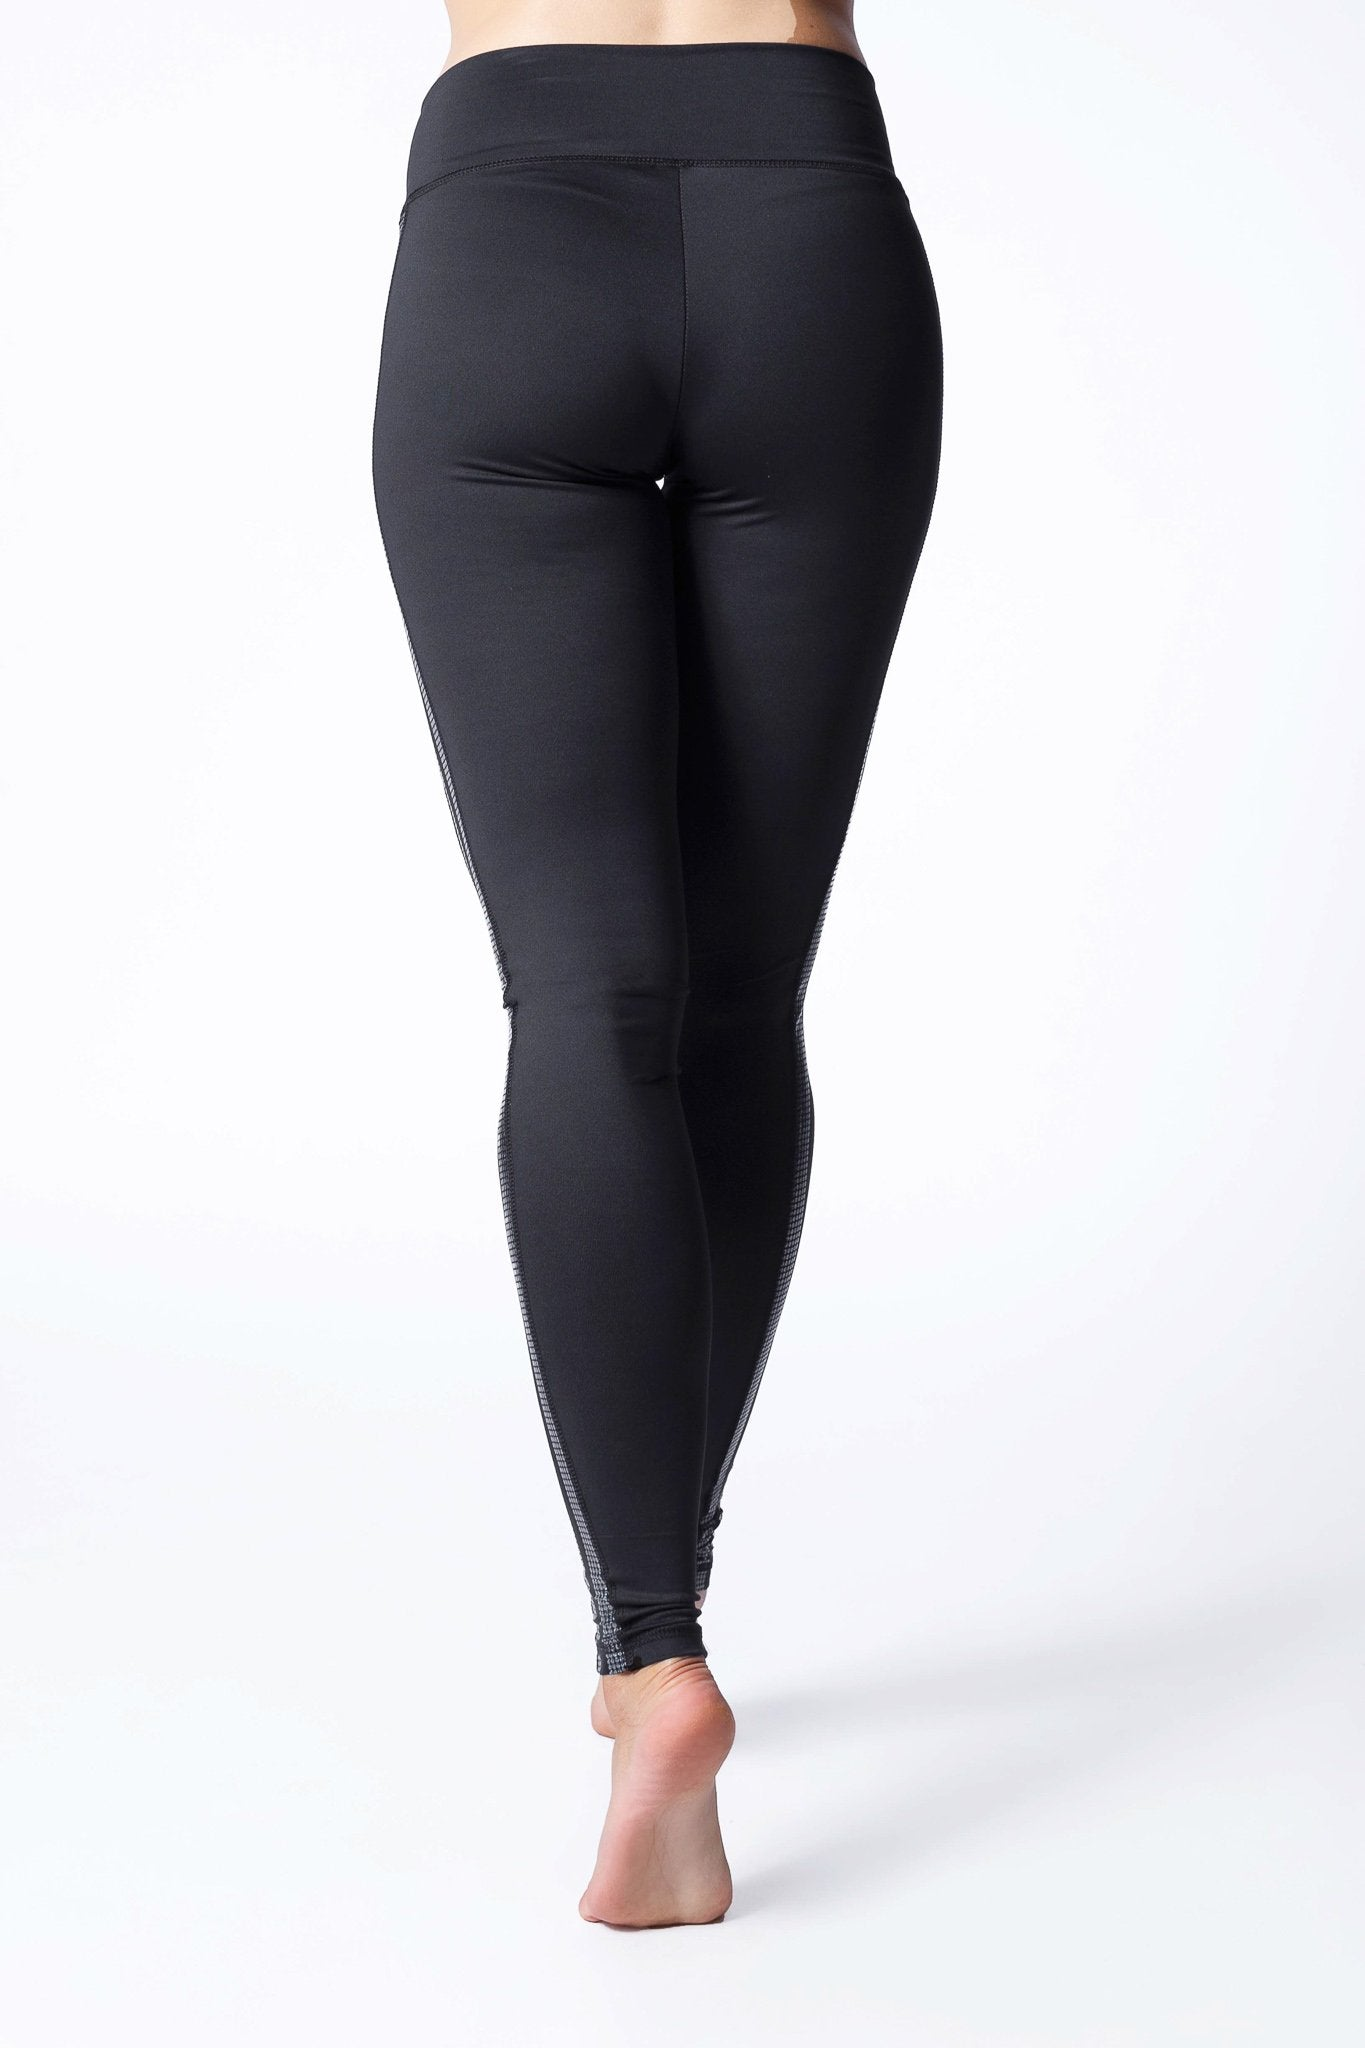 Glamour Leggings - BarbellPrincessUsa